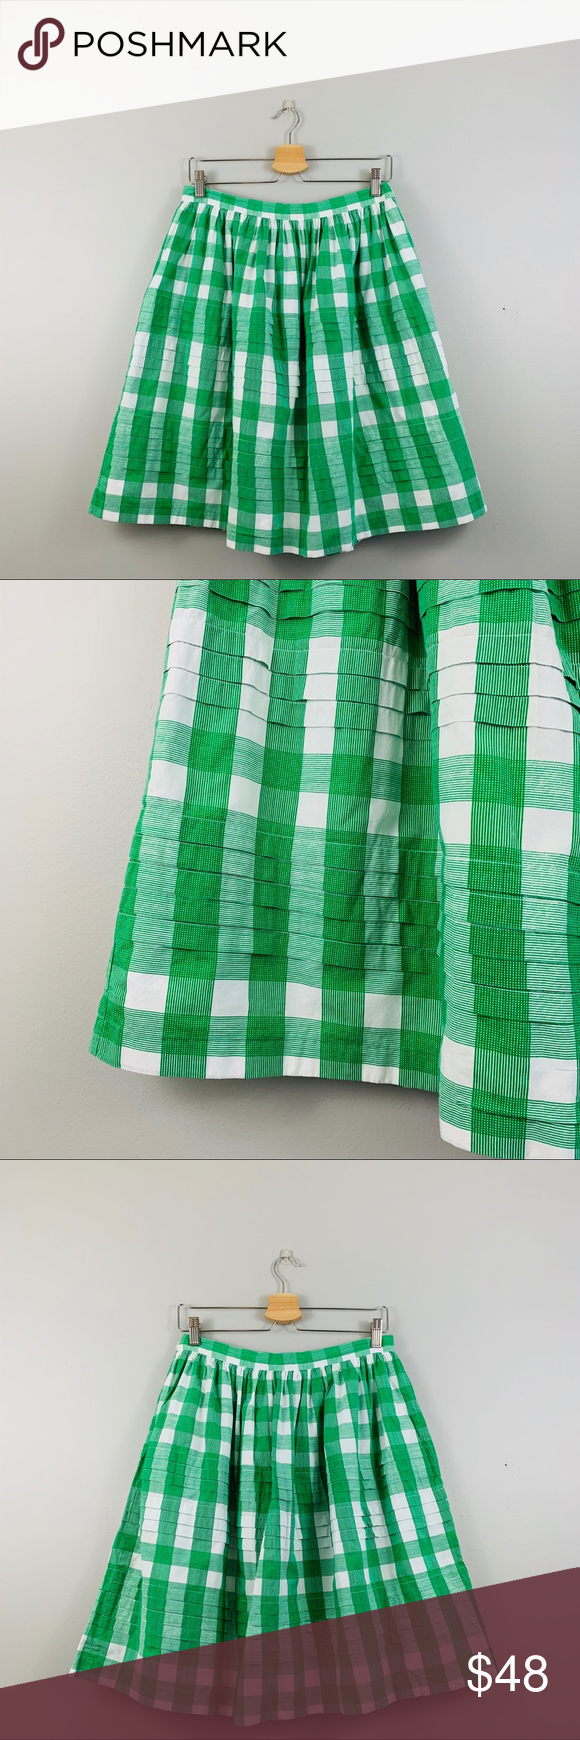 Tommy Hilfiger | Green Plaid Tiered Skirt